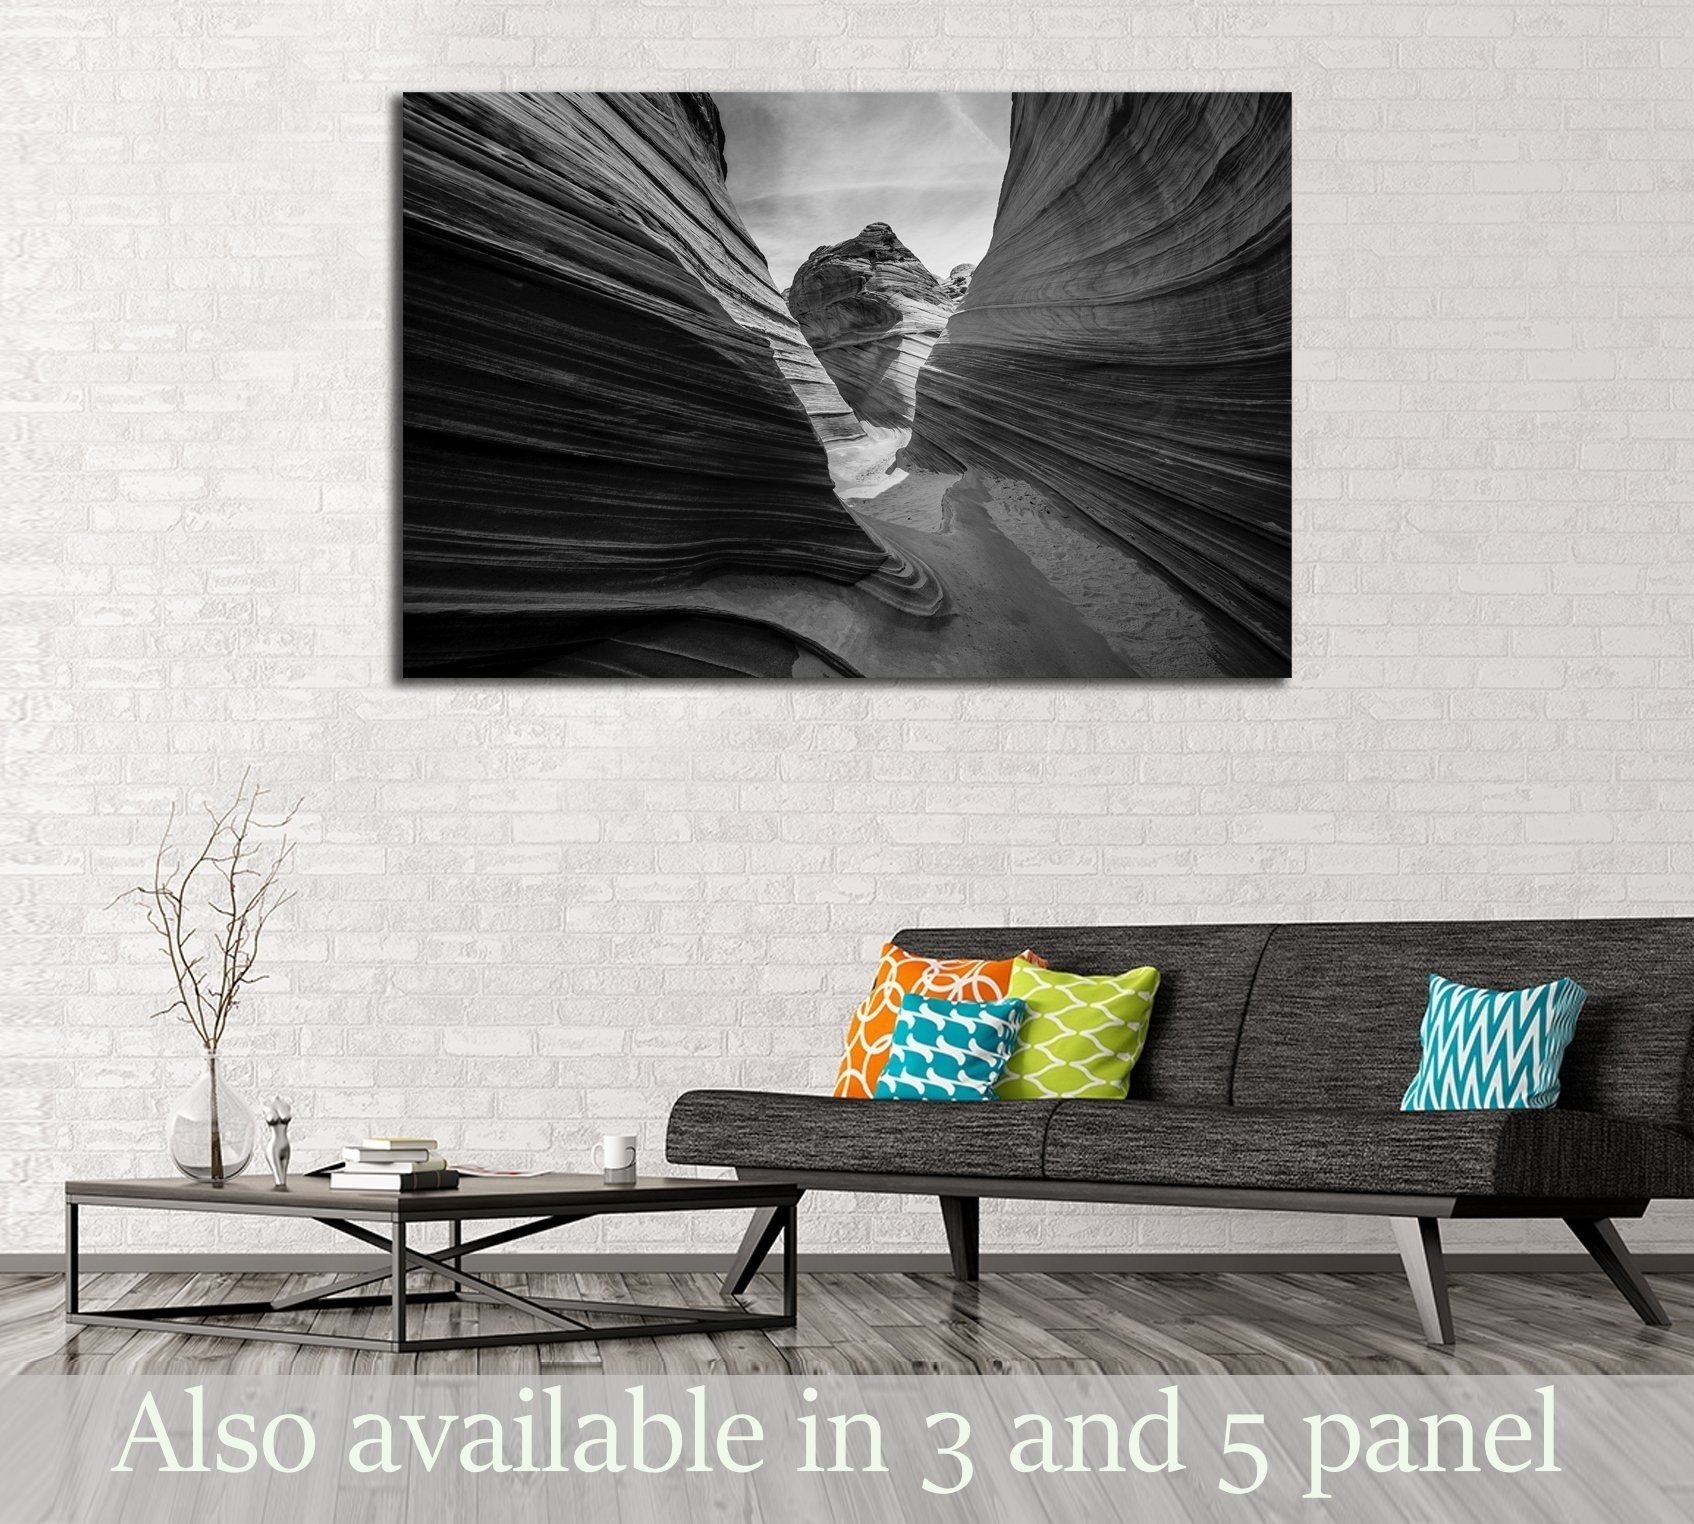 Incredible Mountains Wall Art At Zellart Canvas Of Arizona Popular Within Current Arizona Wall Art (Gallery 12 of 20)